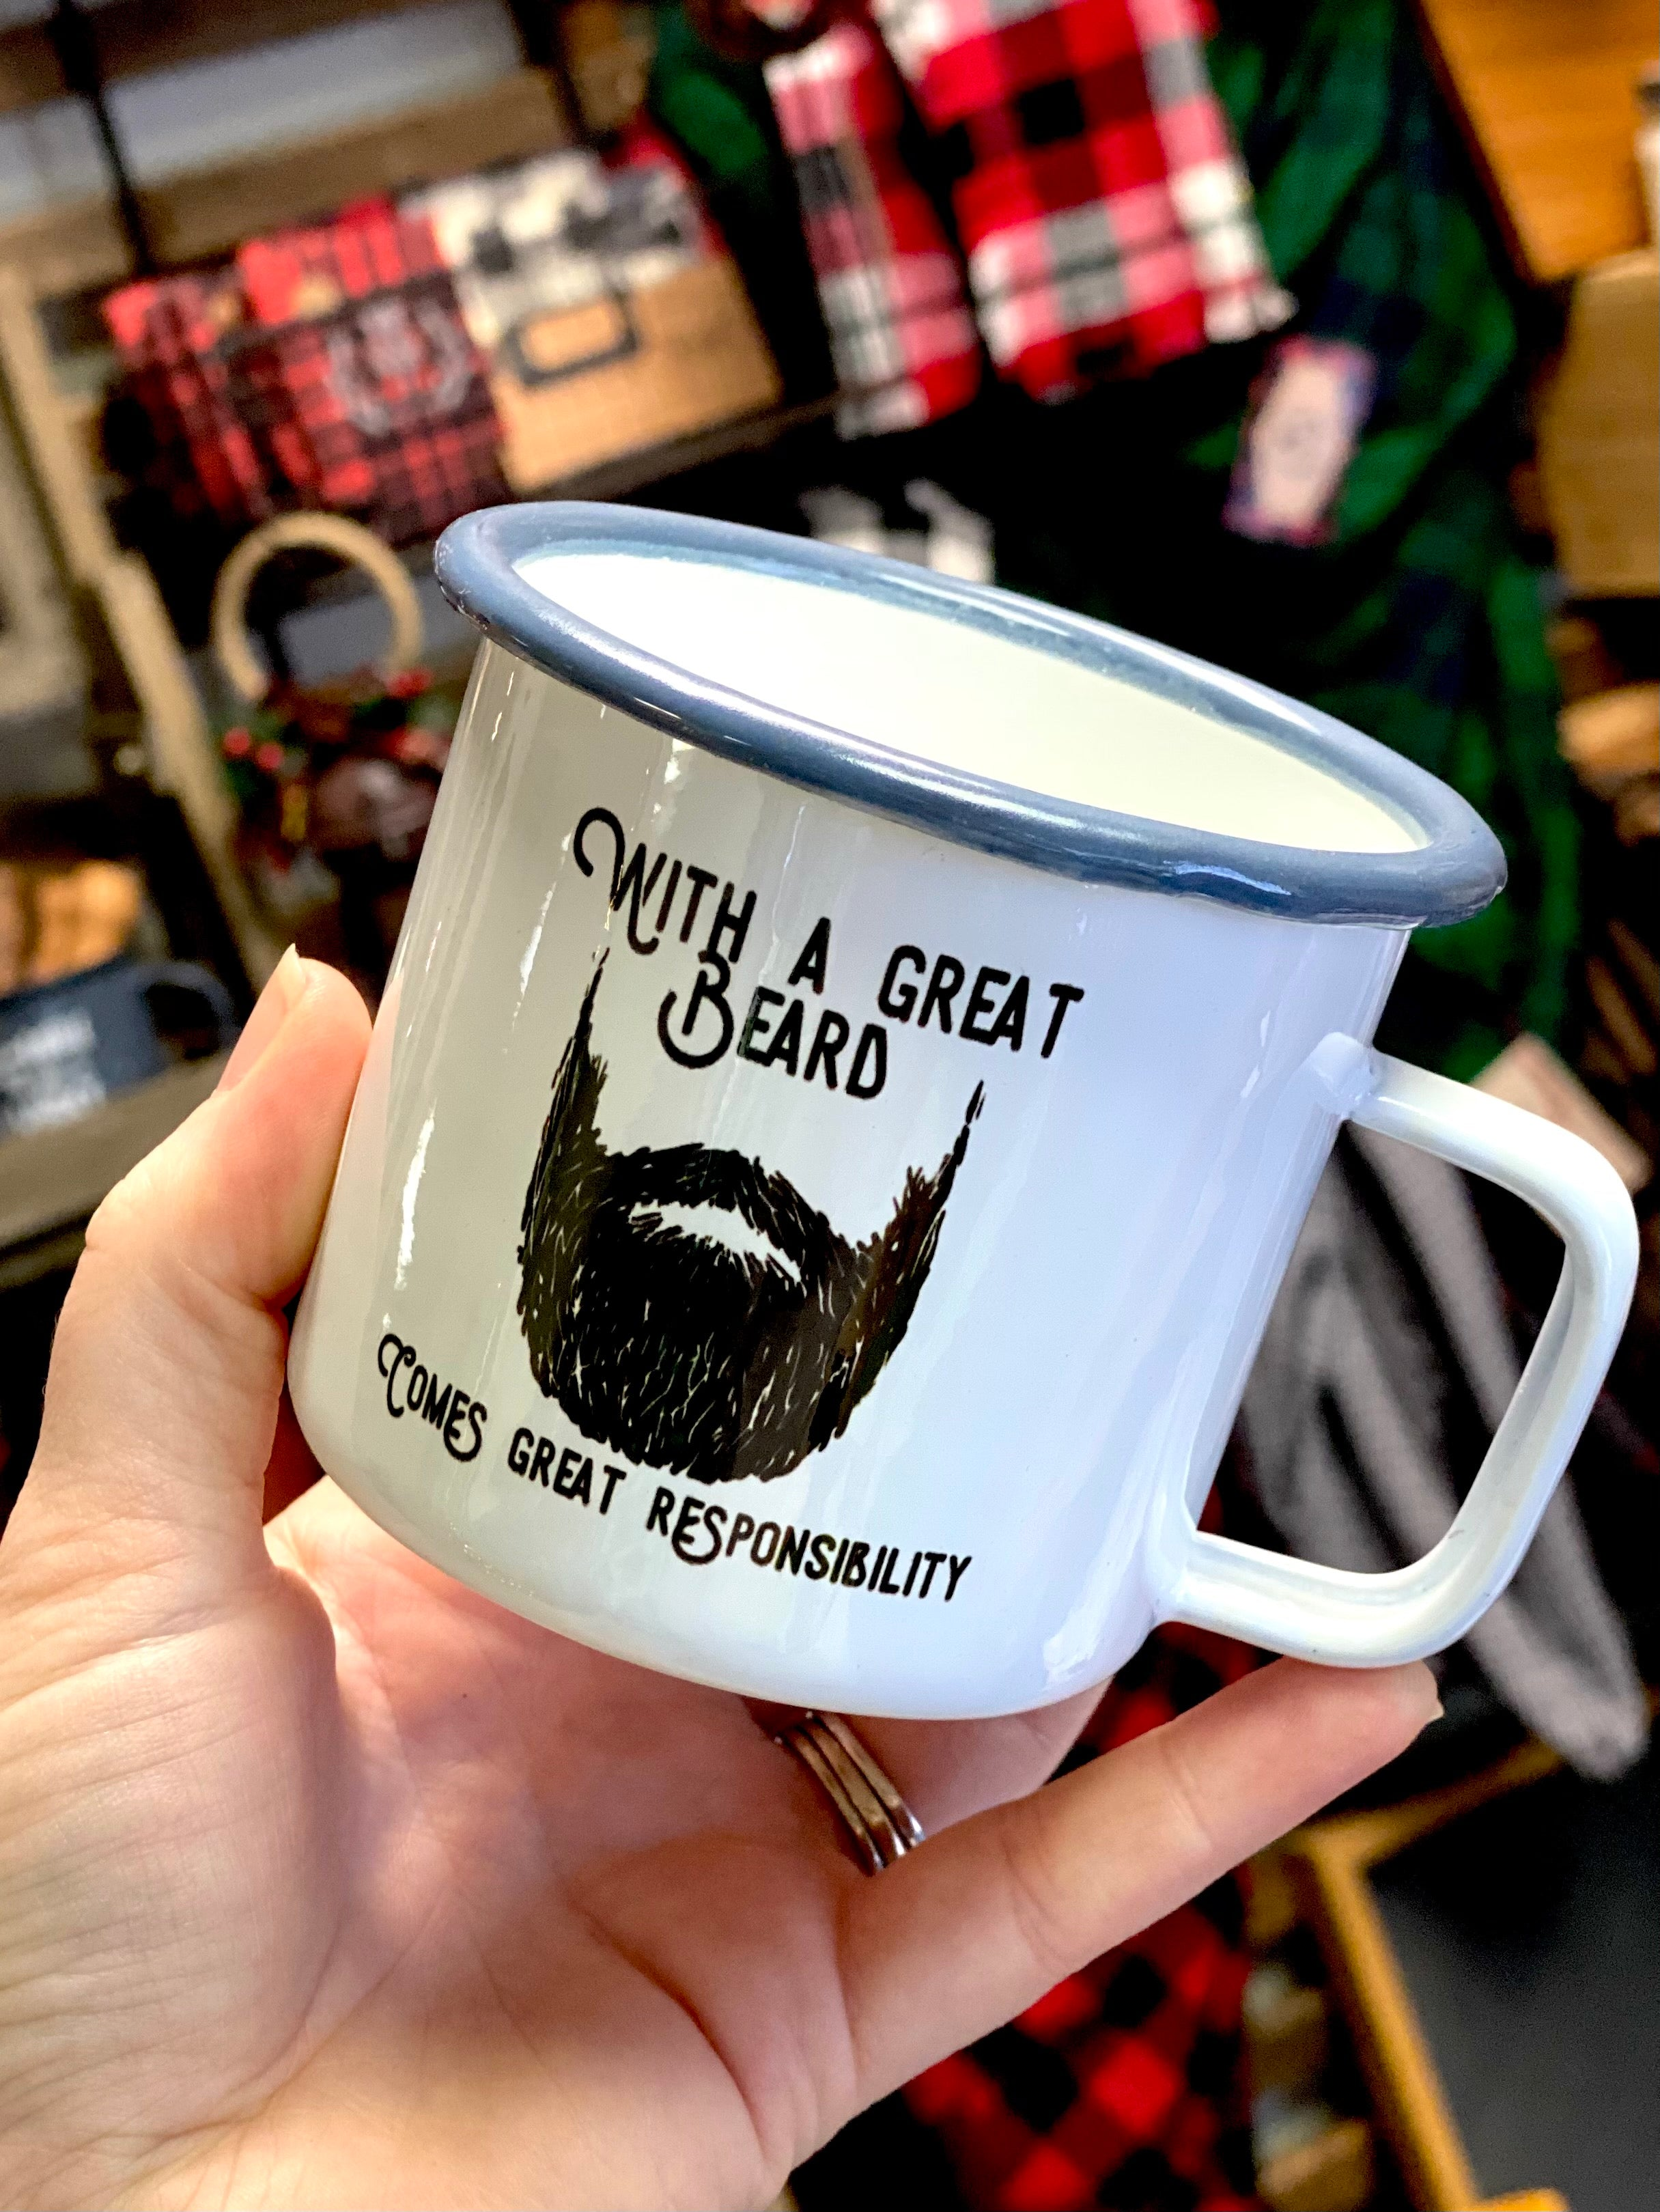 With a Great Beard Comes Great Responsibility Weathered Enamel Campfire Mug